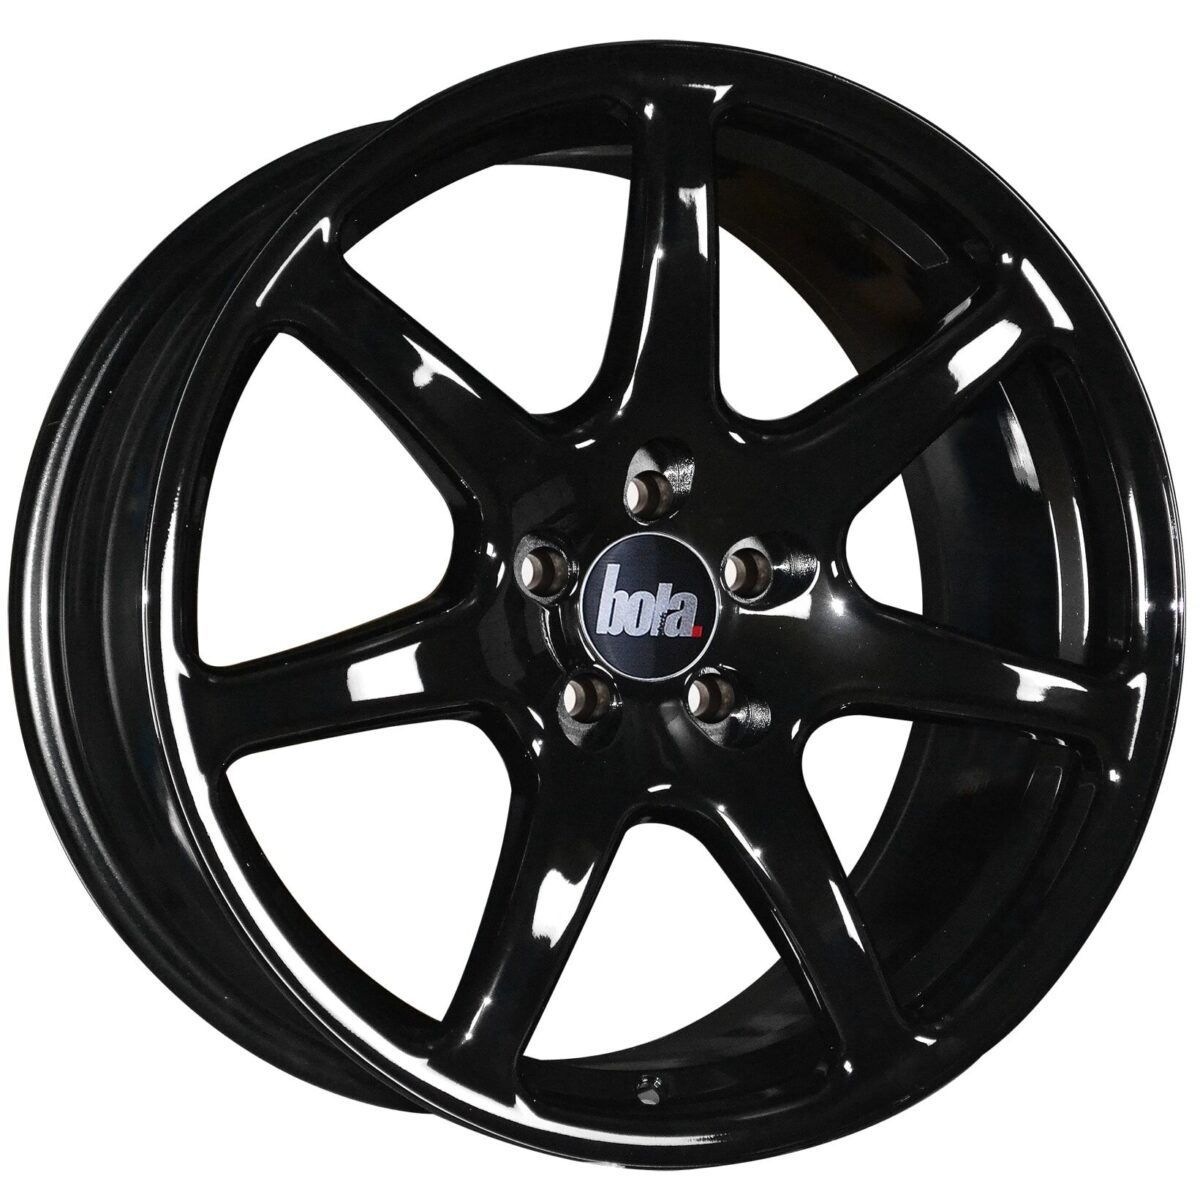 "18"" BOLA B7 Wheels - Gloss Black - VW / Audi / Mercedes - 5x112"